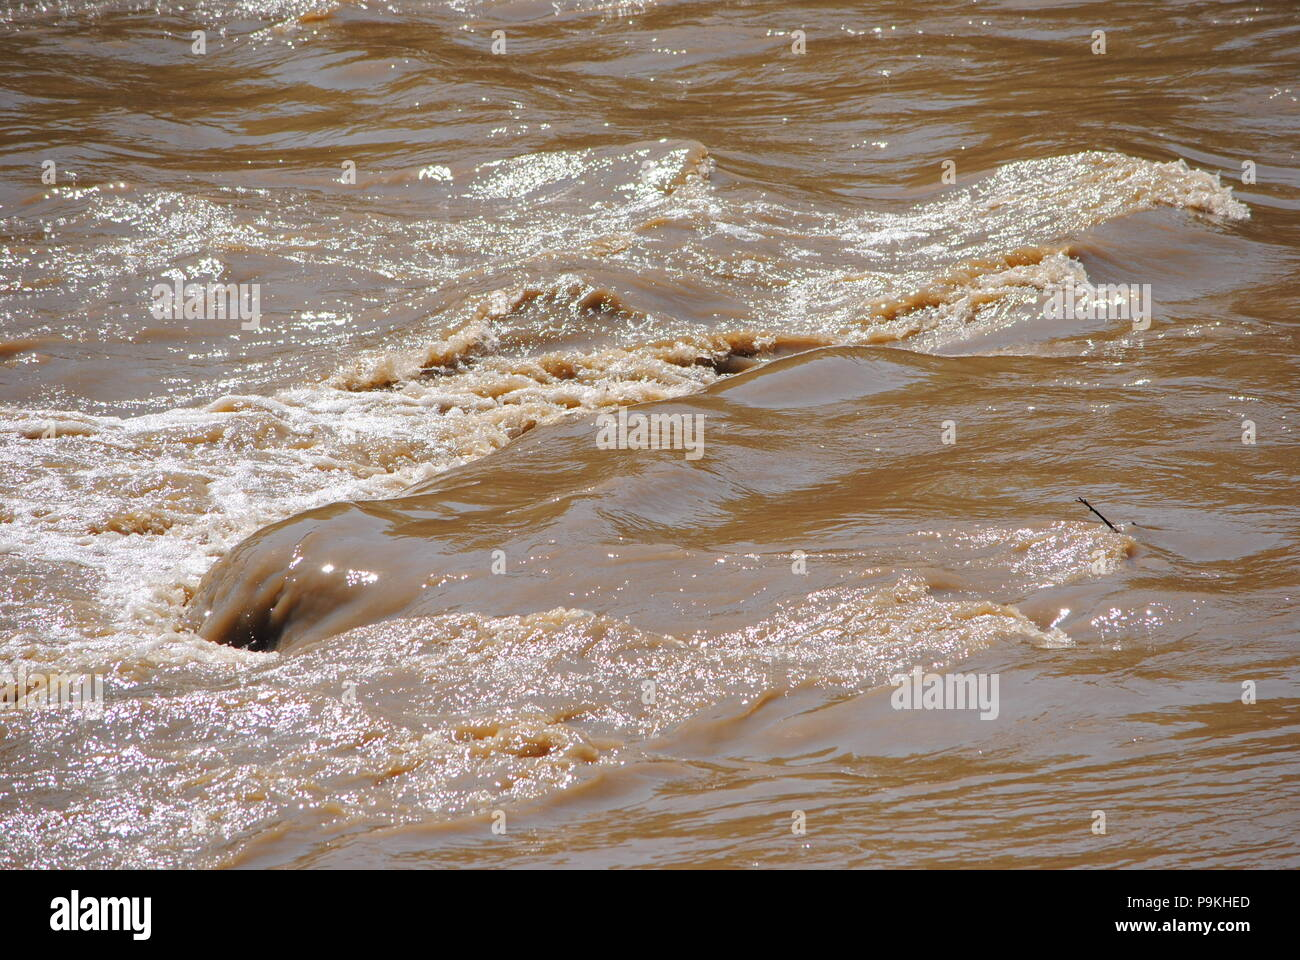 MUDDY WATERS, OF THE, SANDUSKY RIVER. - Stock Image